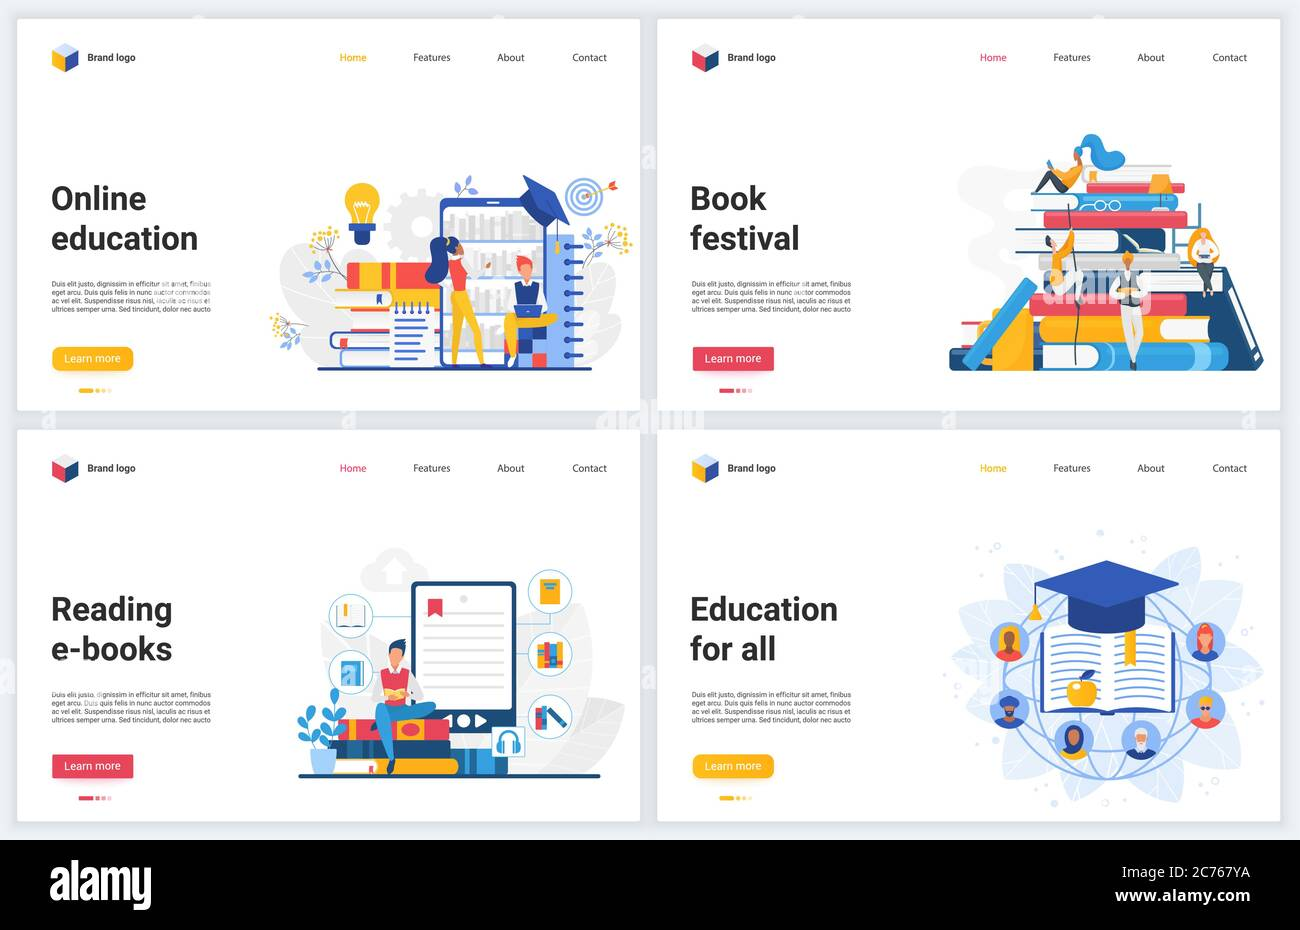 Online Education Technology Vector Illustrations Creative Concept Interface Website Design Banners With Flat Cartoon Educational Mobile Services For Reading Distance Training And Student Learning Stock Vector Image Art Alamy